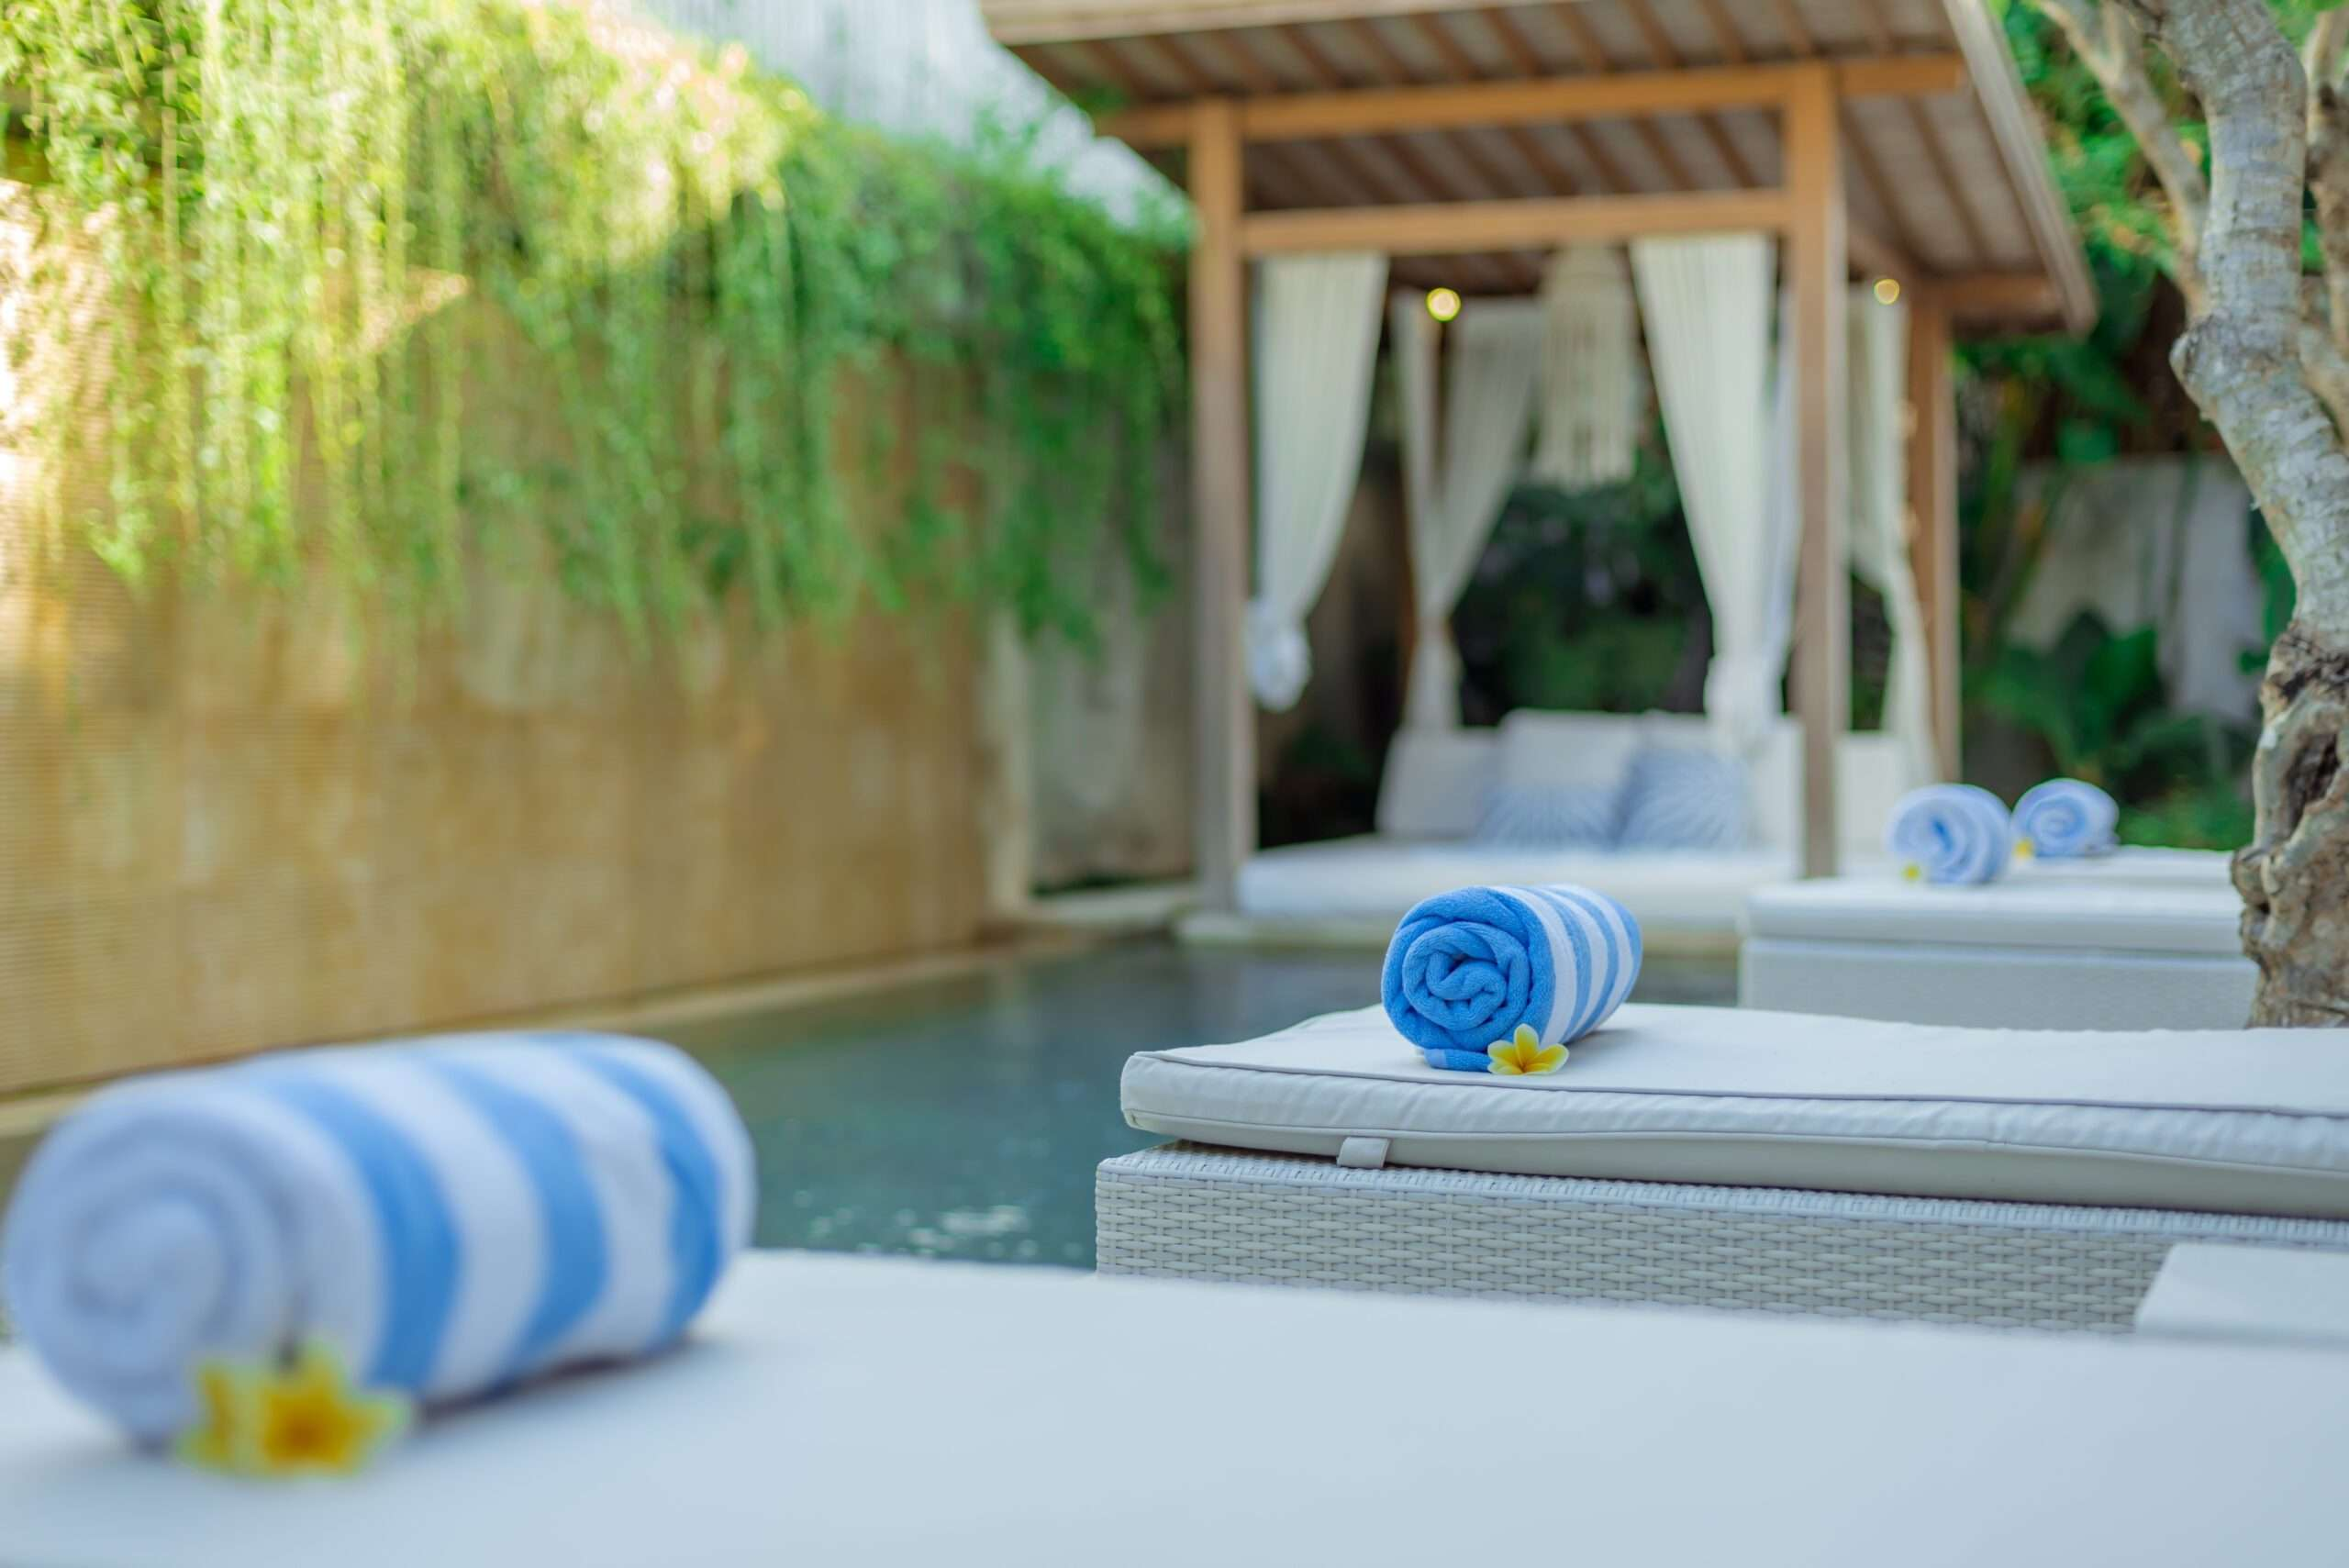 Sun lounge chairs and towels next to pool at Villa Savasana in Bali